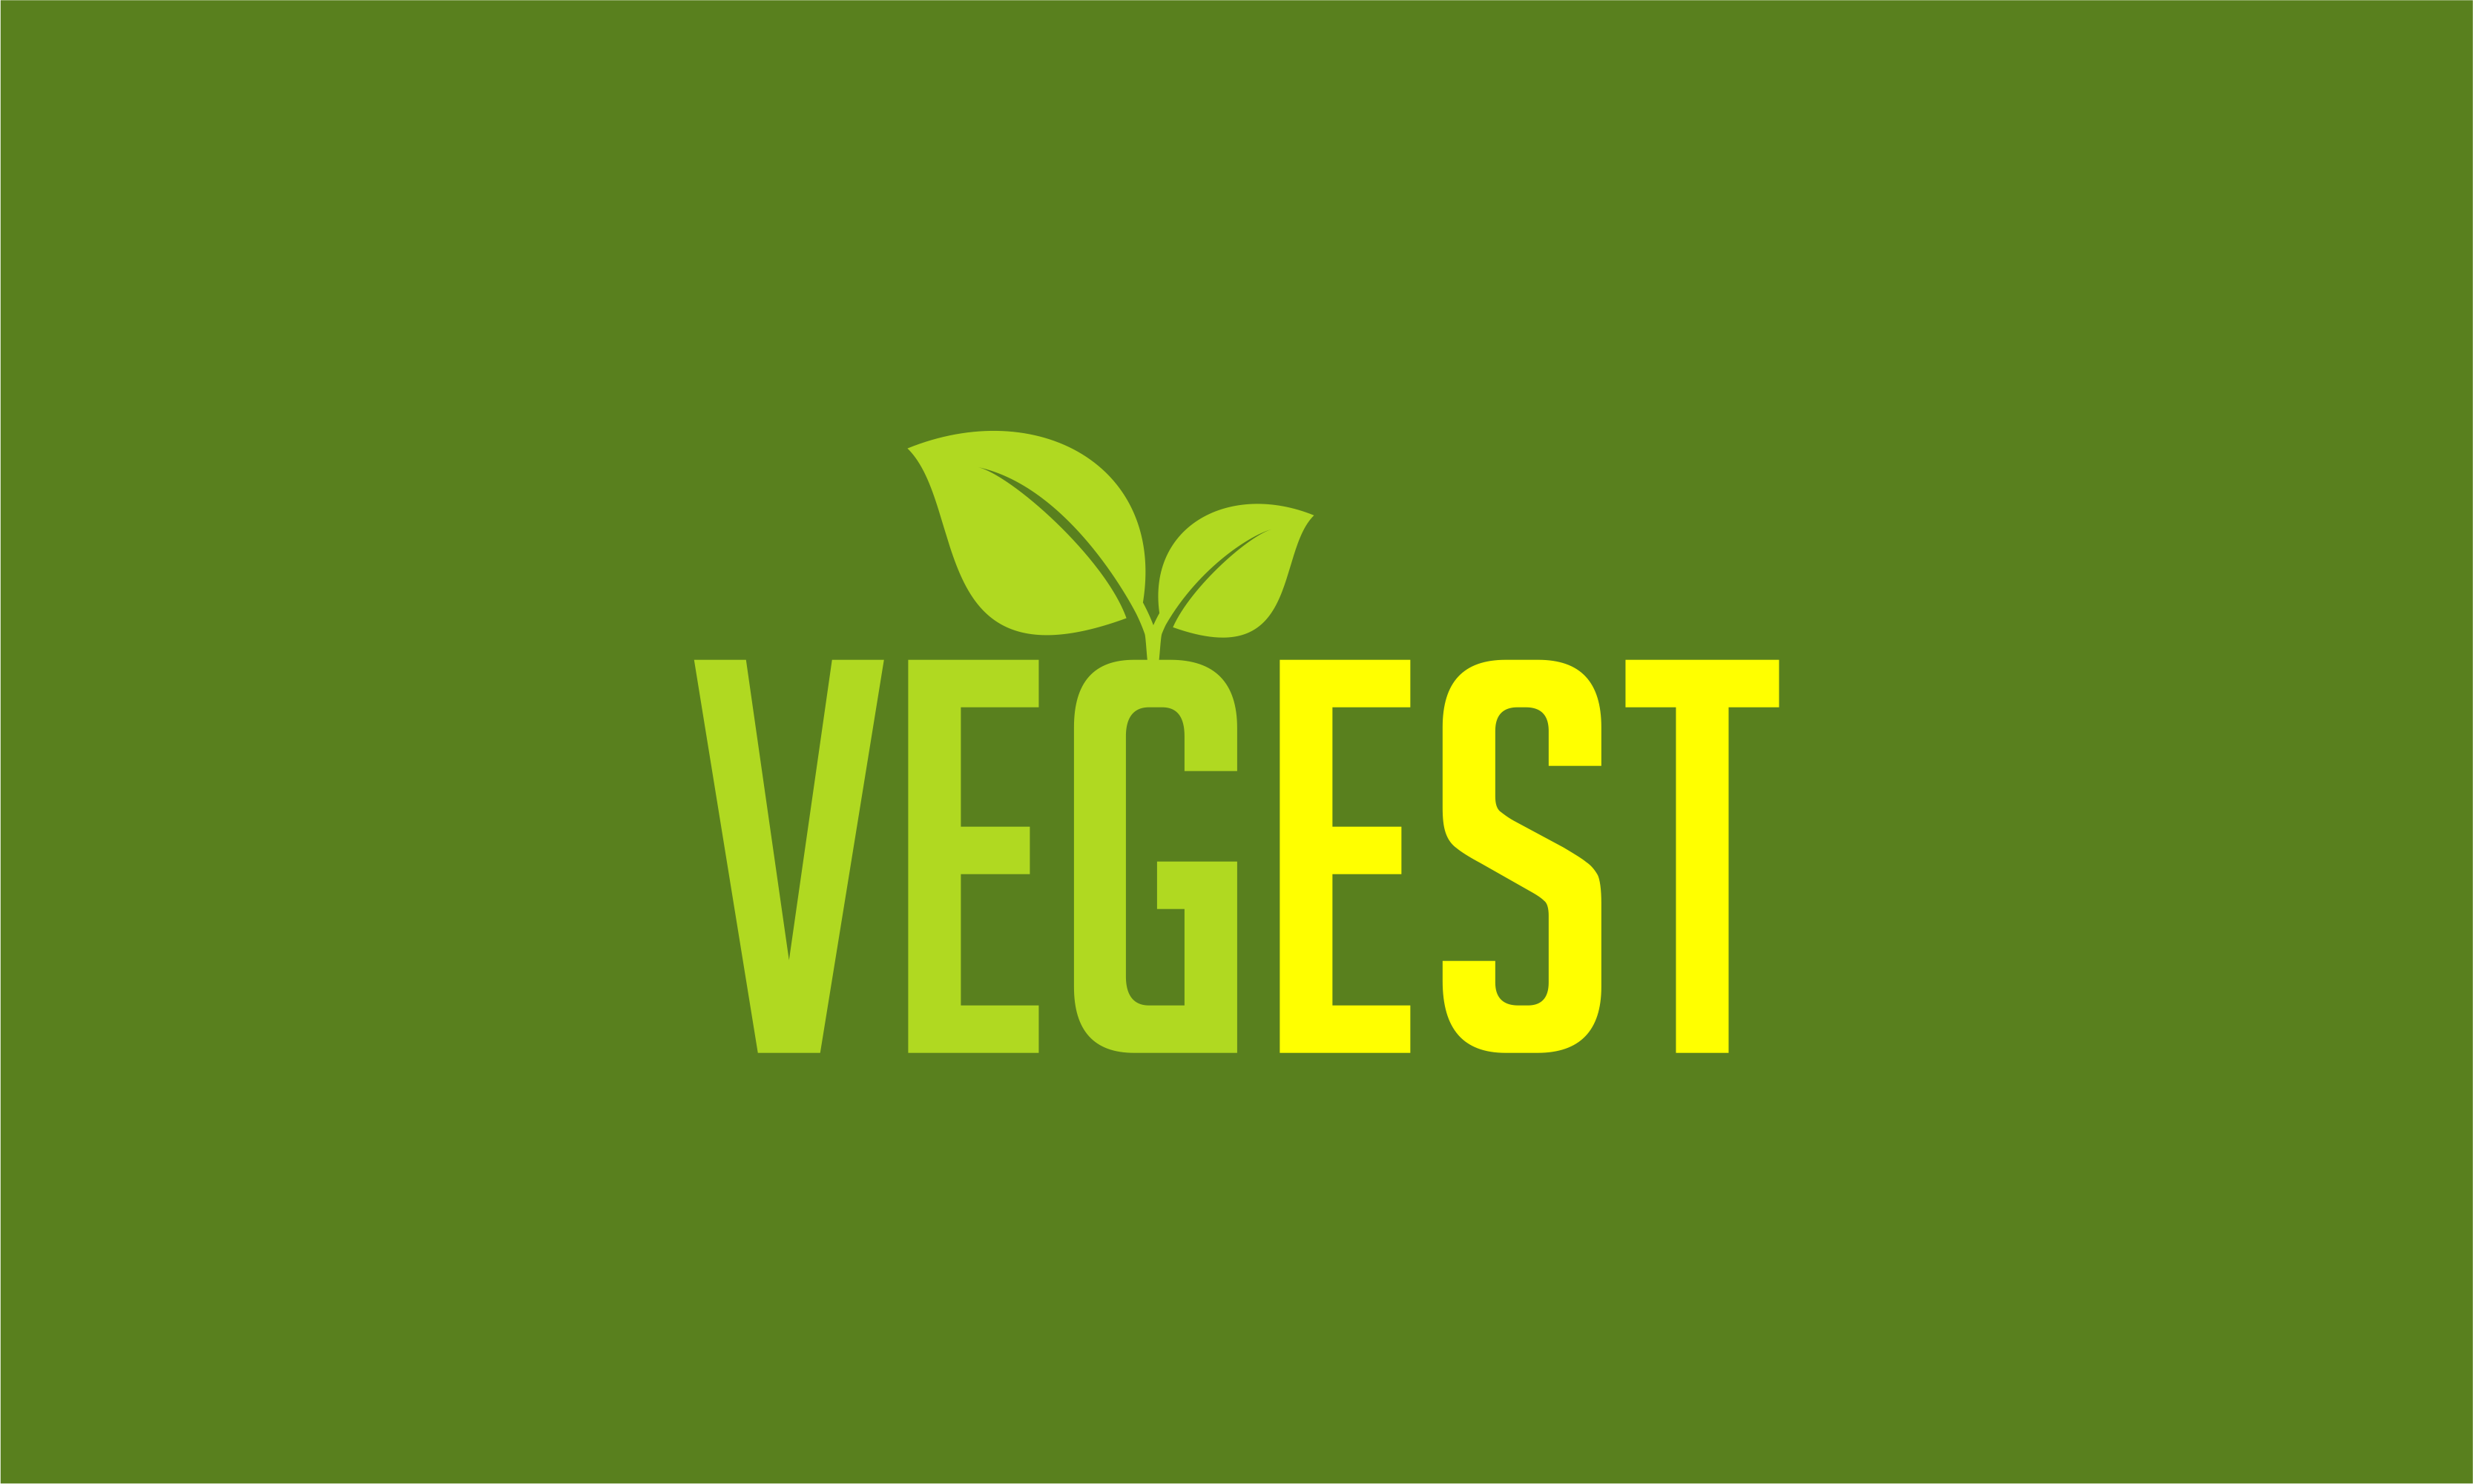 vegest logo